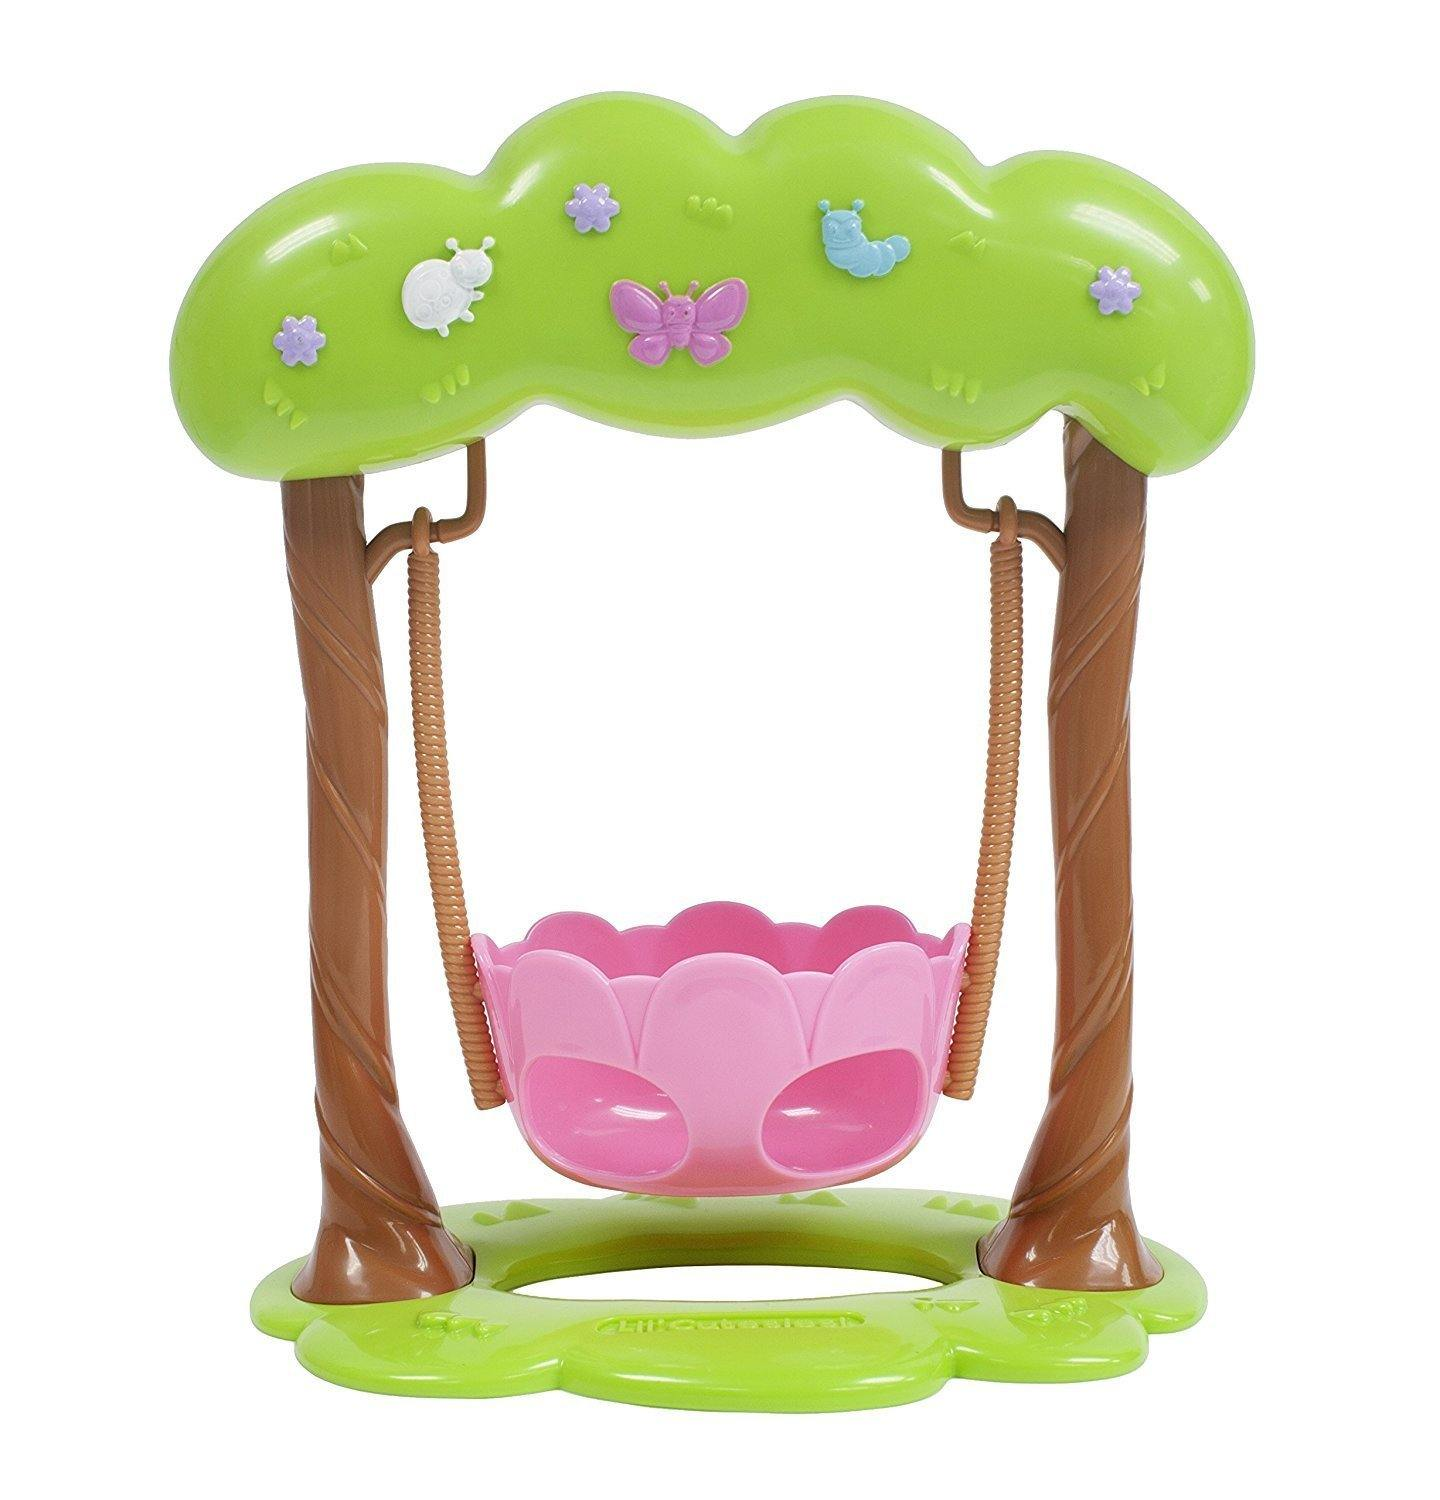 For Keeps! Lil' Cutesies Adorable Swing Fits Most Dolls 9.5""